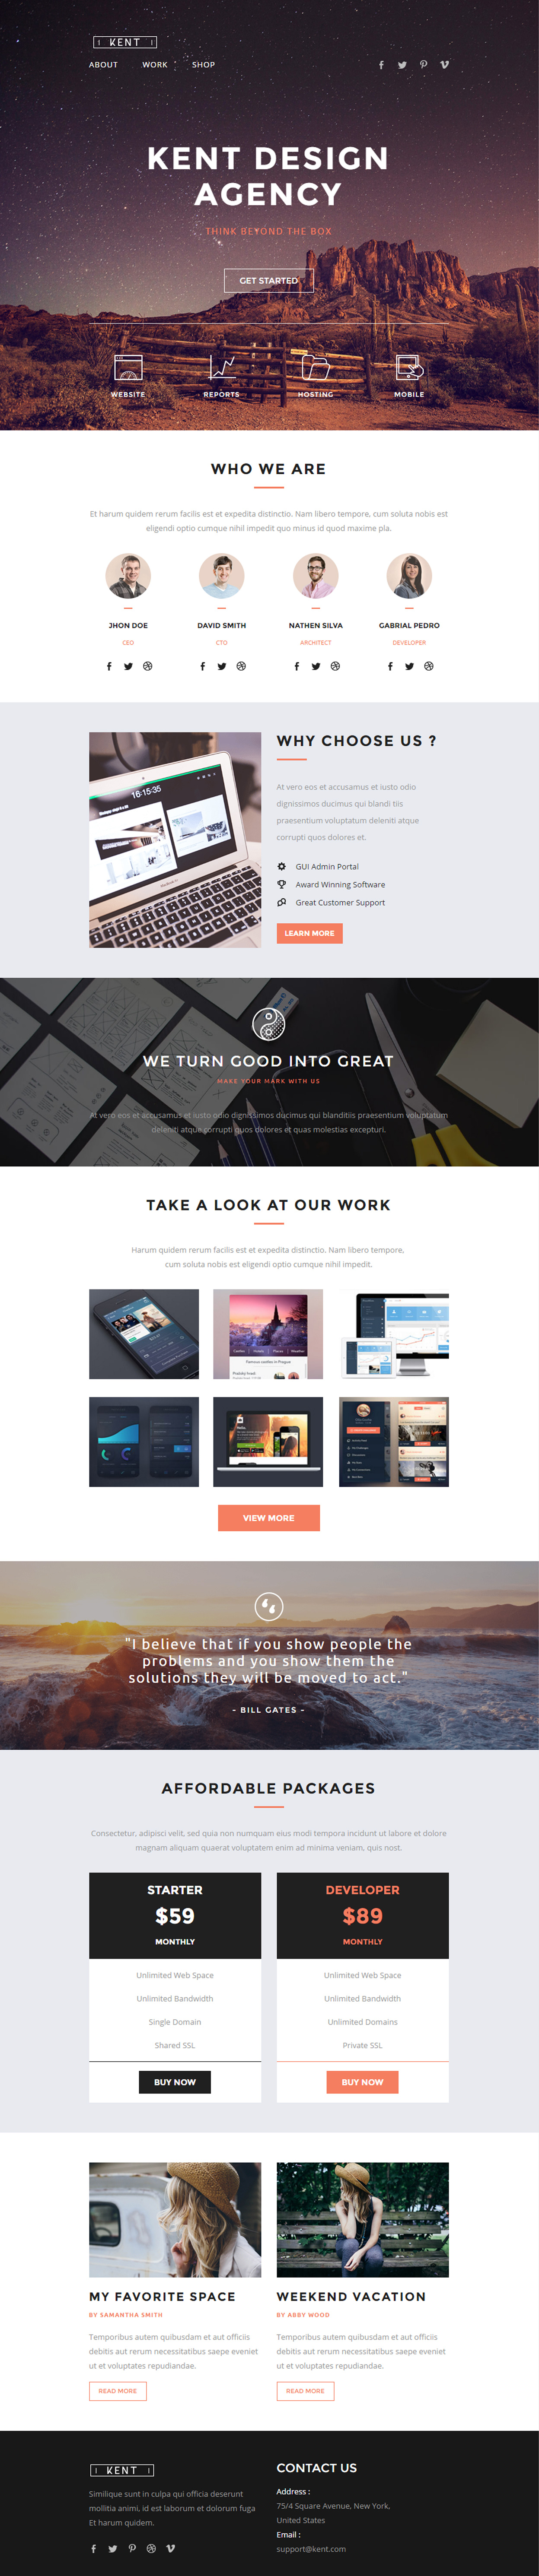 Kent Is Premium Responsive HTML Email Template Drag Drop - Drag and drop mailchimp templates